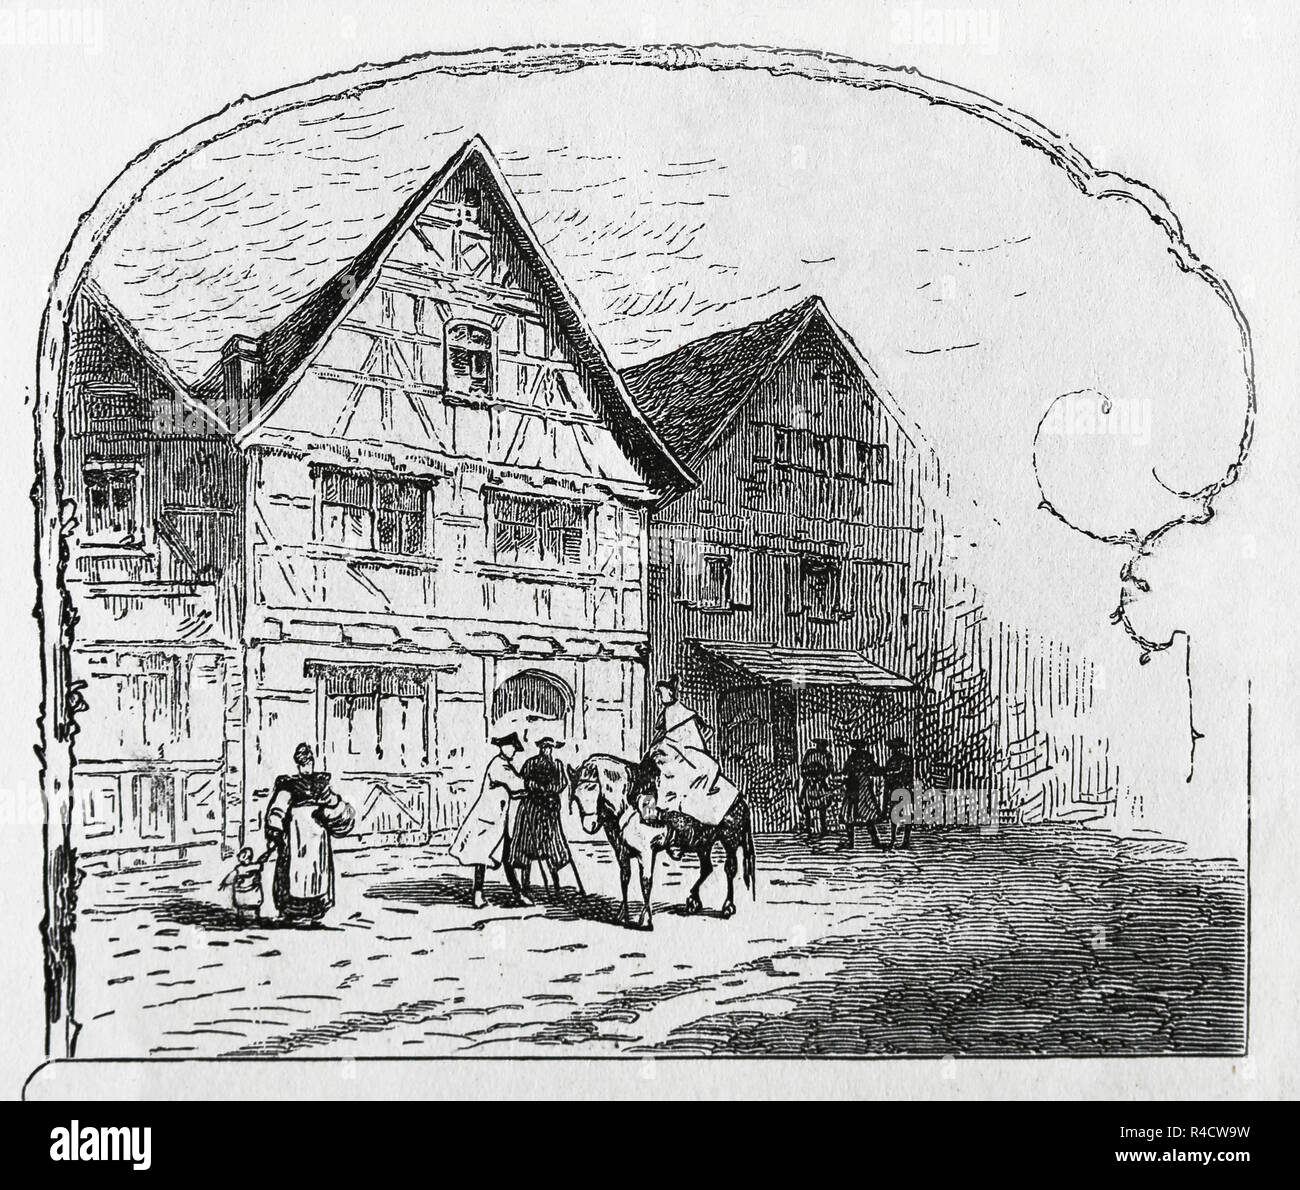 Friedrich Schiller (1759-1805). German Writer. Member of Weimar Classicism. Birthplace in Marbach, Germany. Engravin of Germania, 1882. - Stock Image